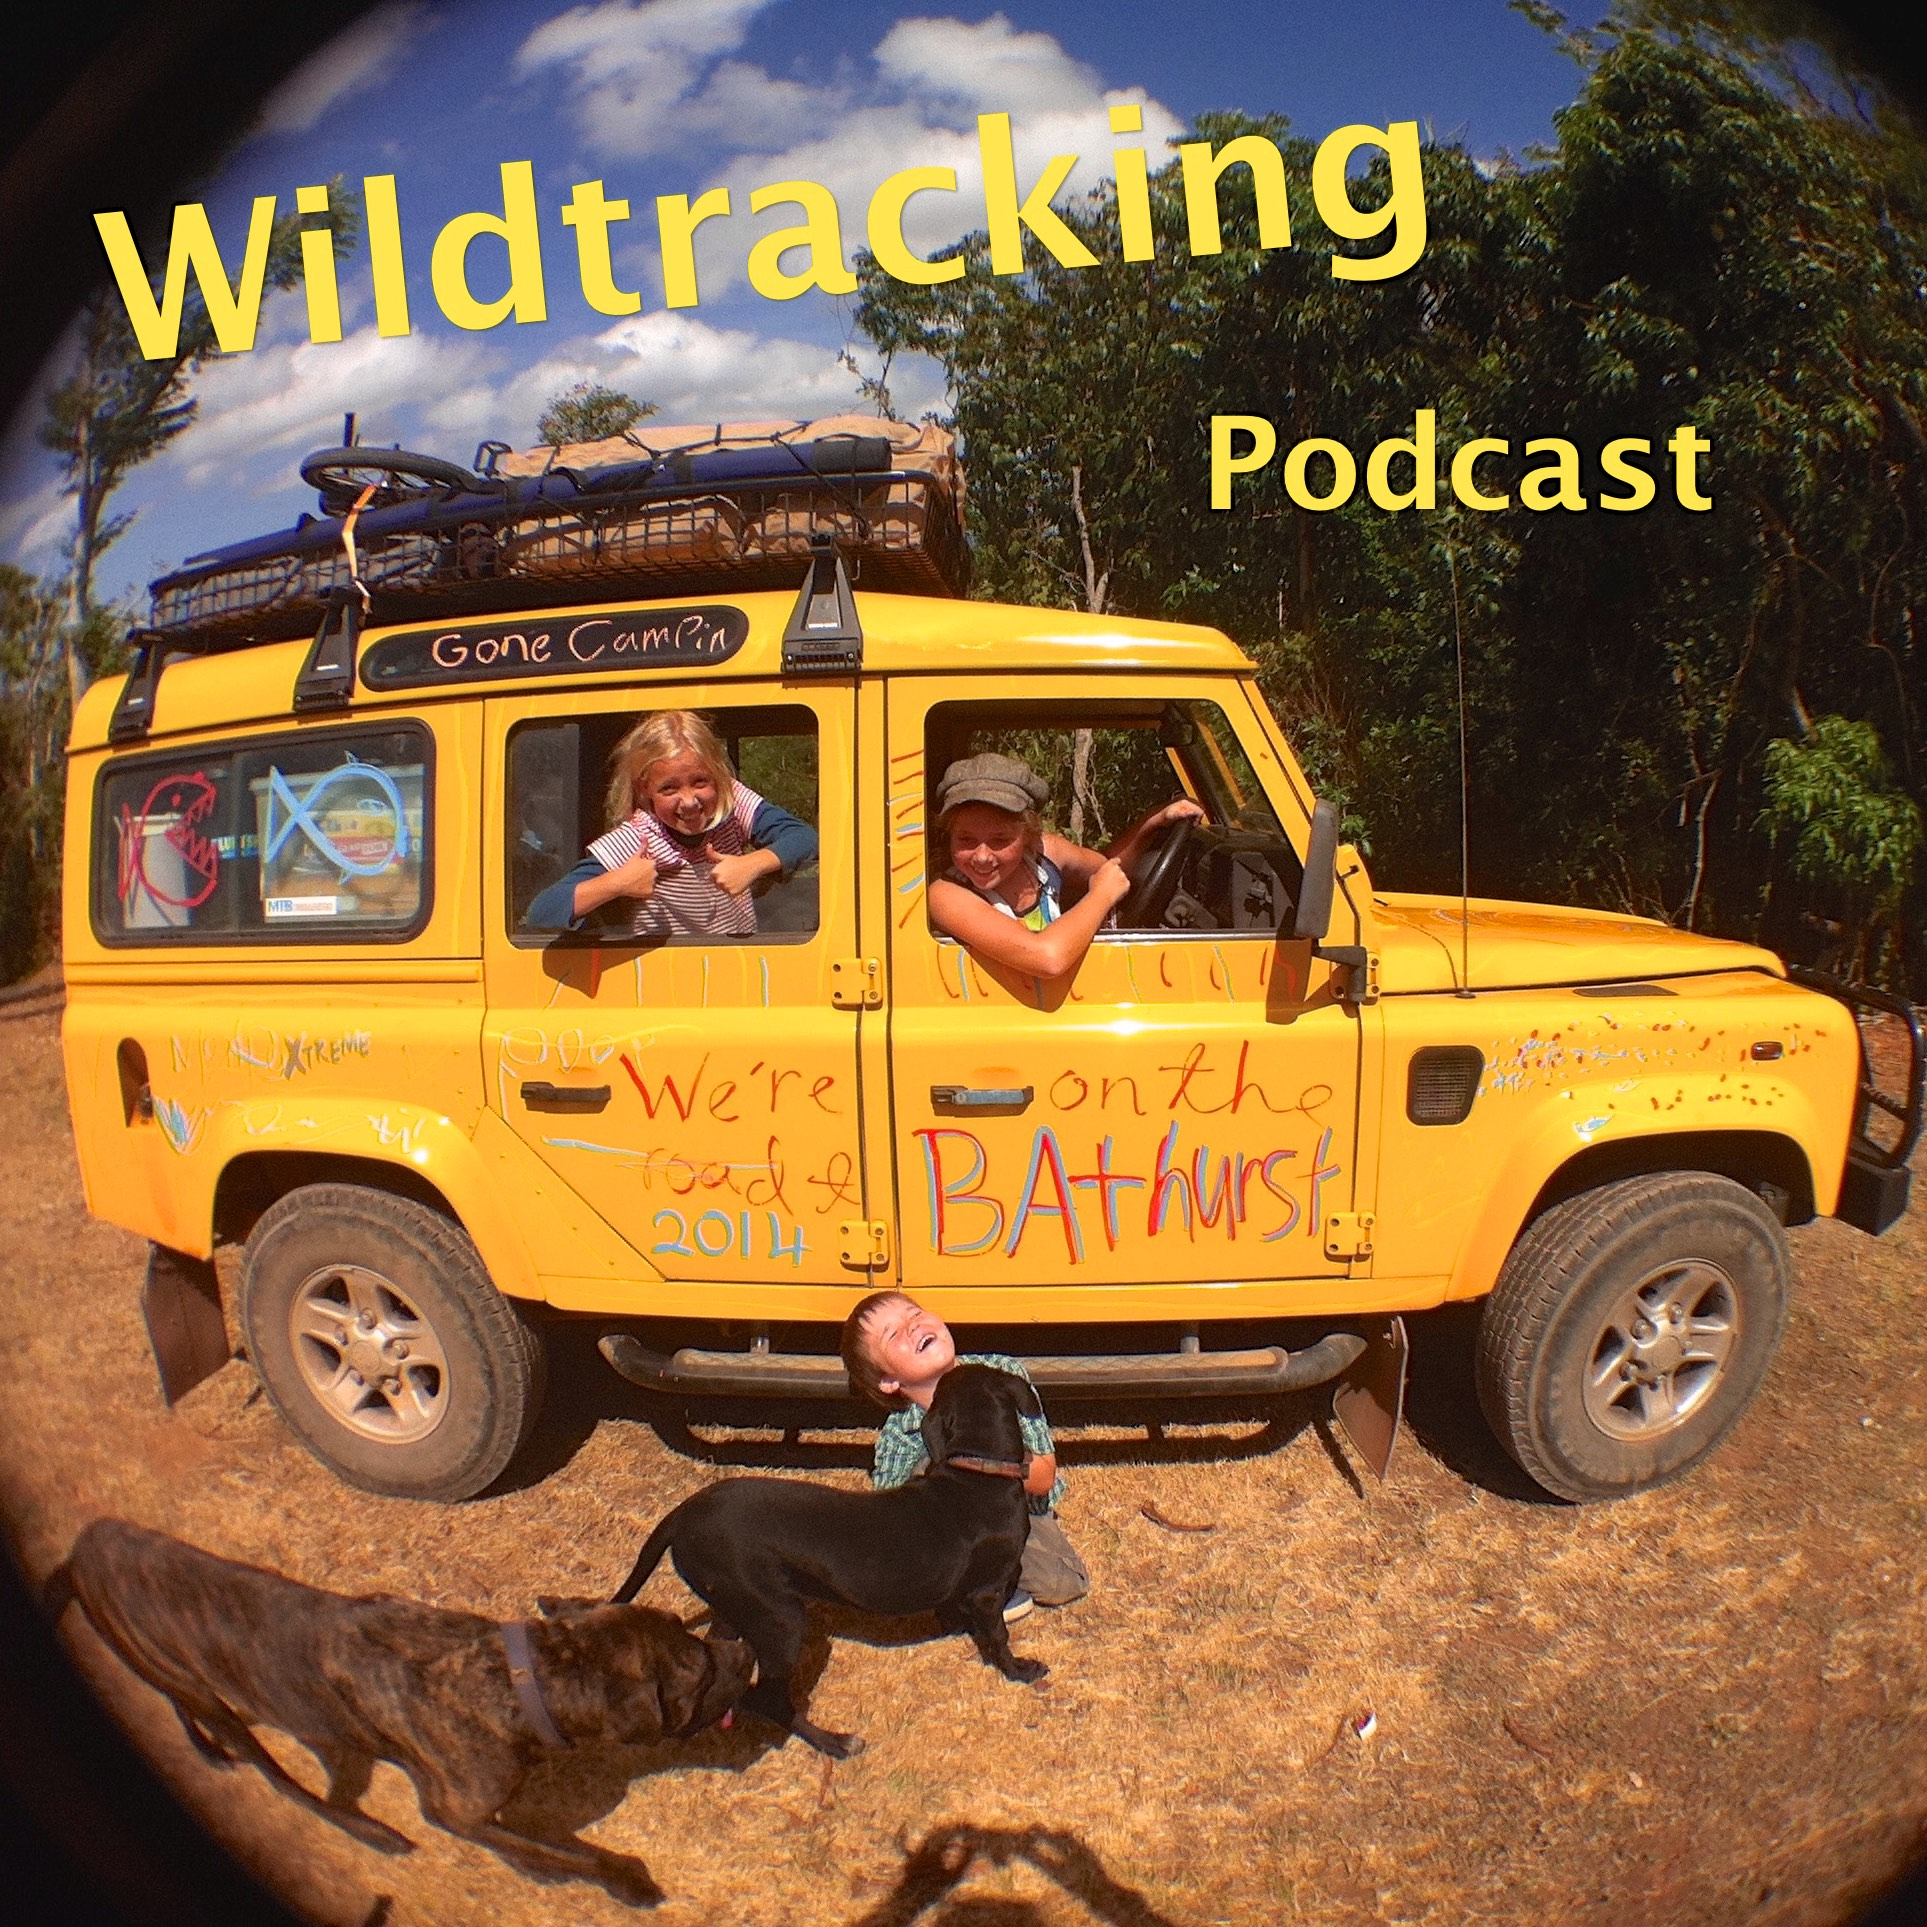 Wildtracking